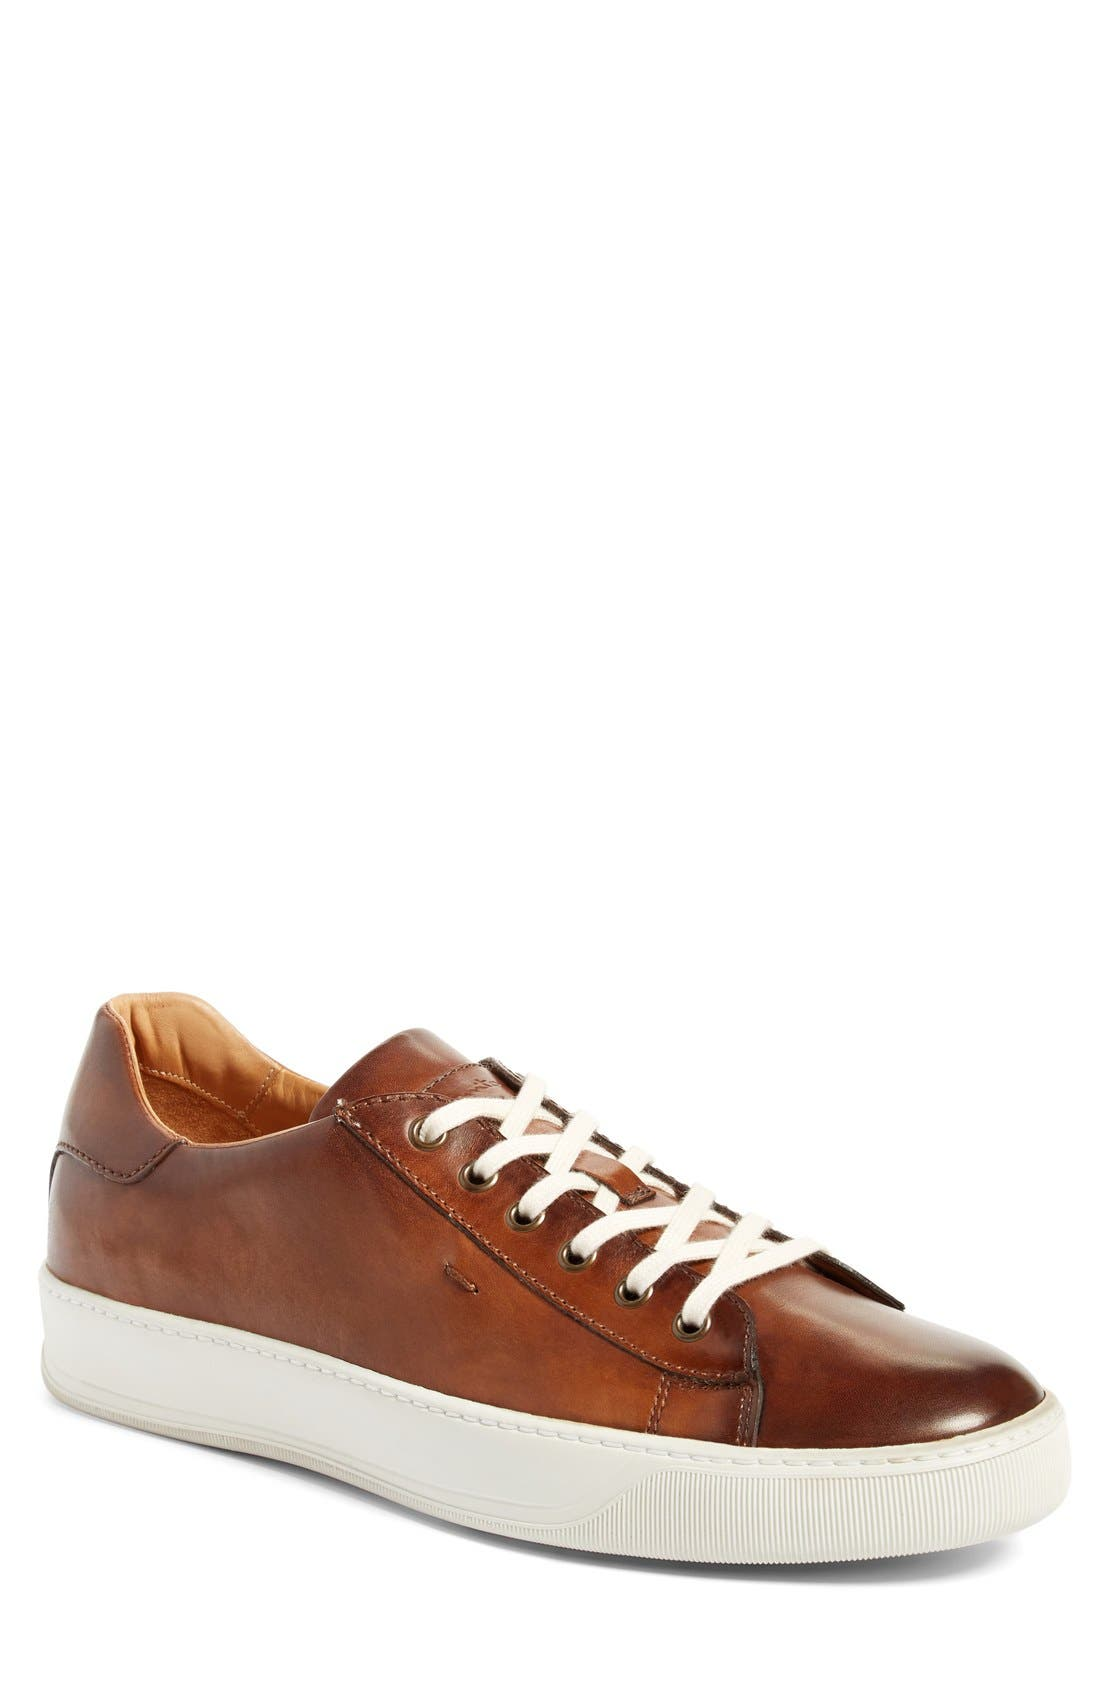 'Apache' Lace-Up Sneaker,                         Main,                         color, Brown Leather